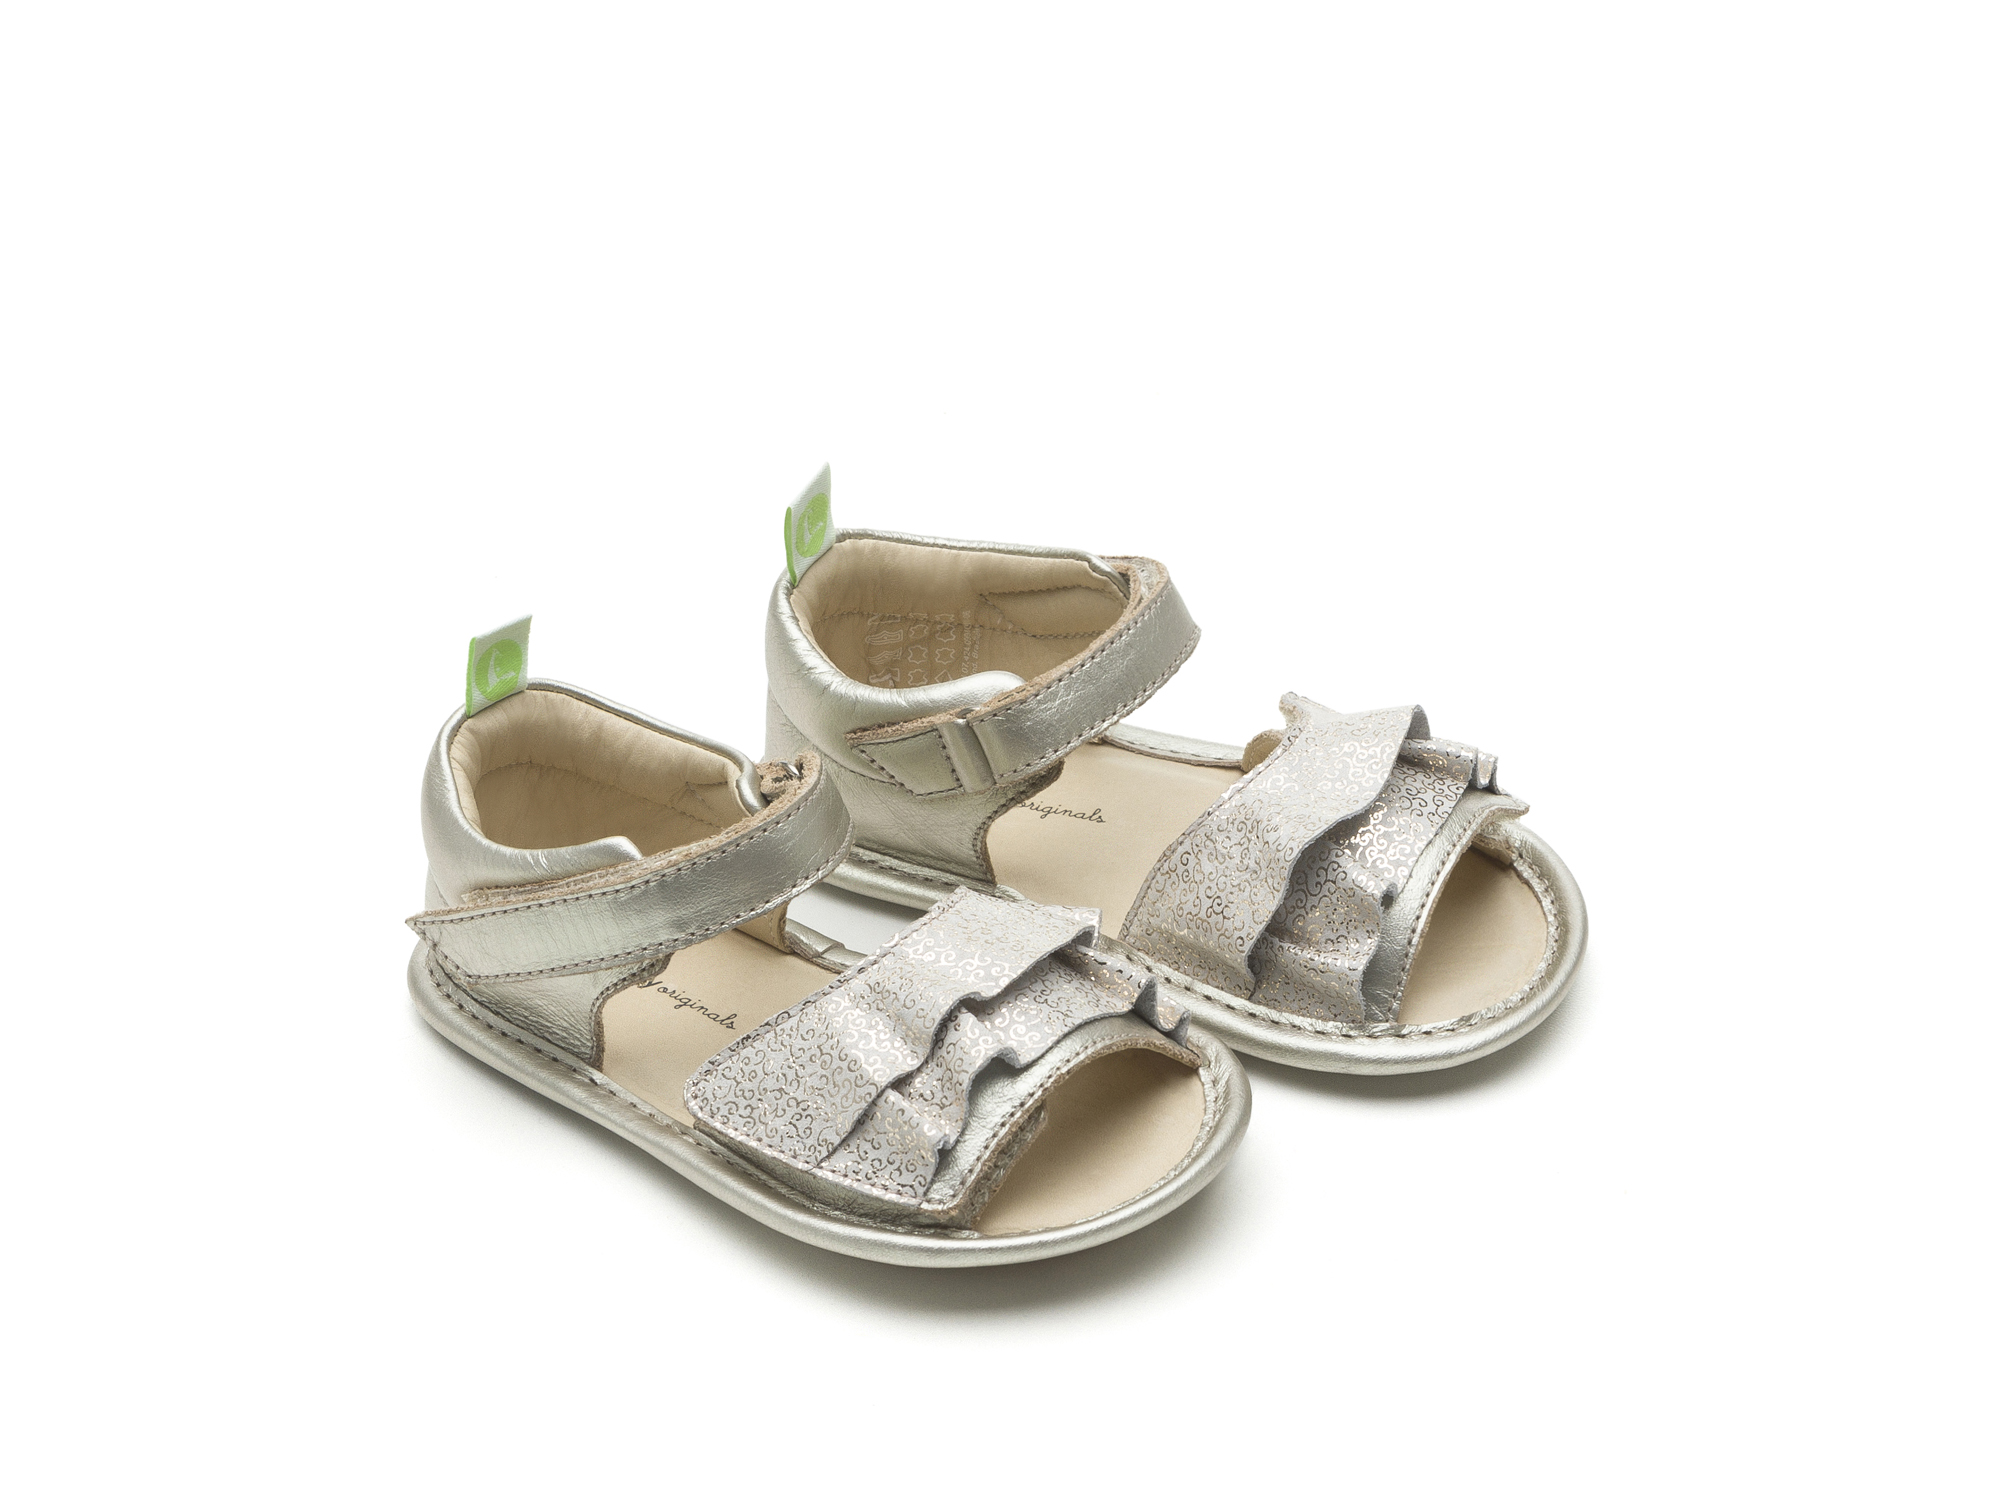 Sandal Windy Whitegold/ Golden Lace Baby for ages 0 to 2 years - 0